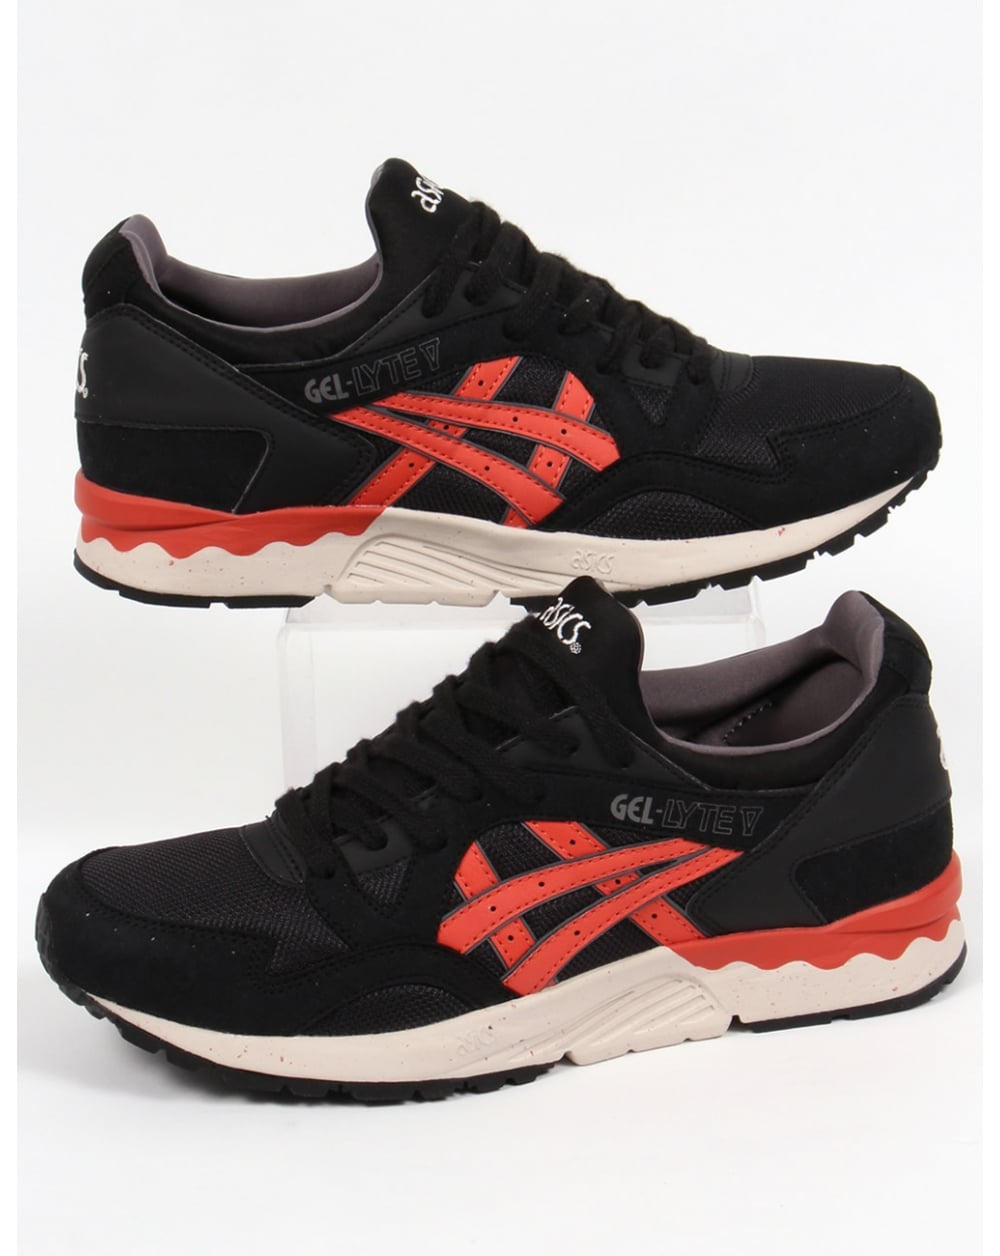 asics gel lyte v trainers black chili red 5 shoes runners sneakers. Black Bedroom Furniture Sets. Home Design Ideas